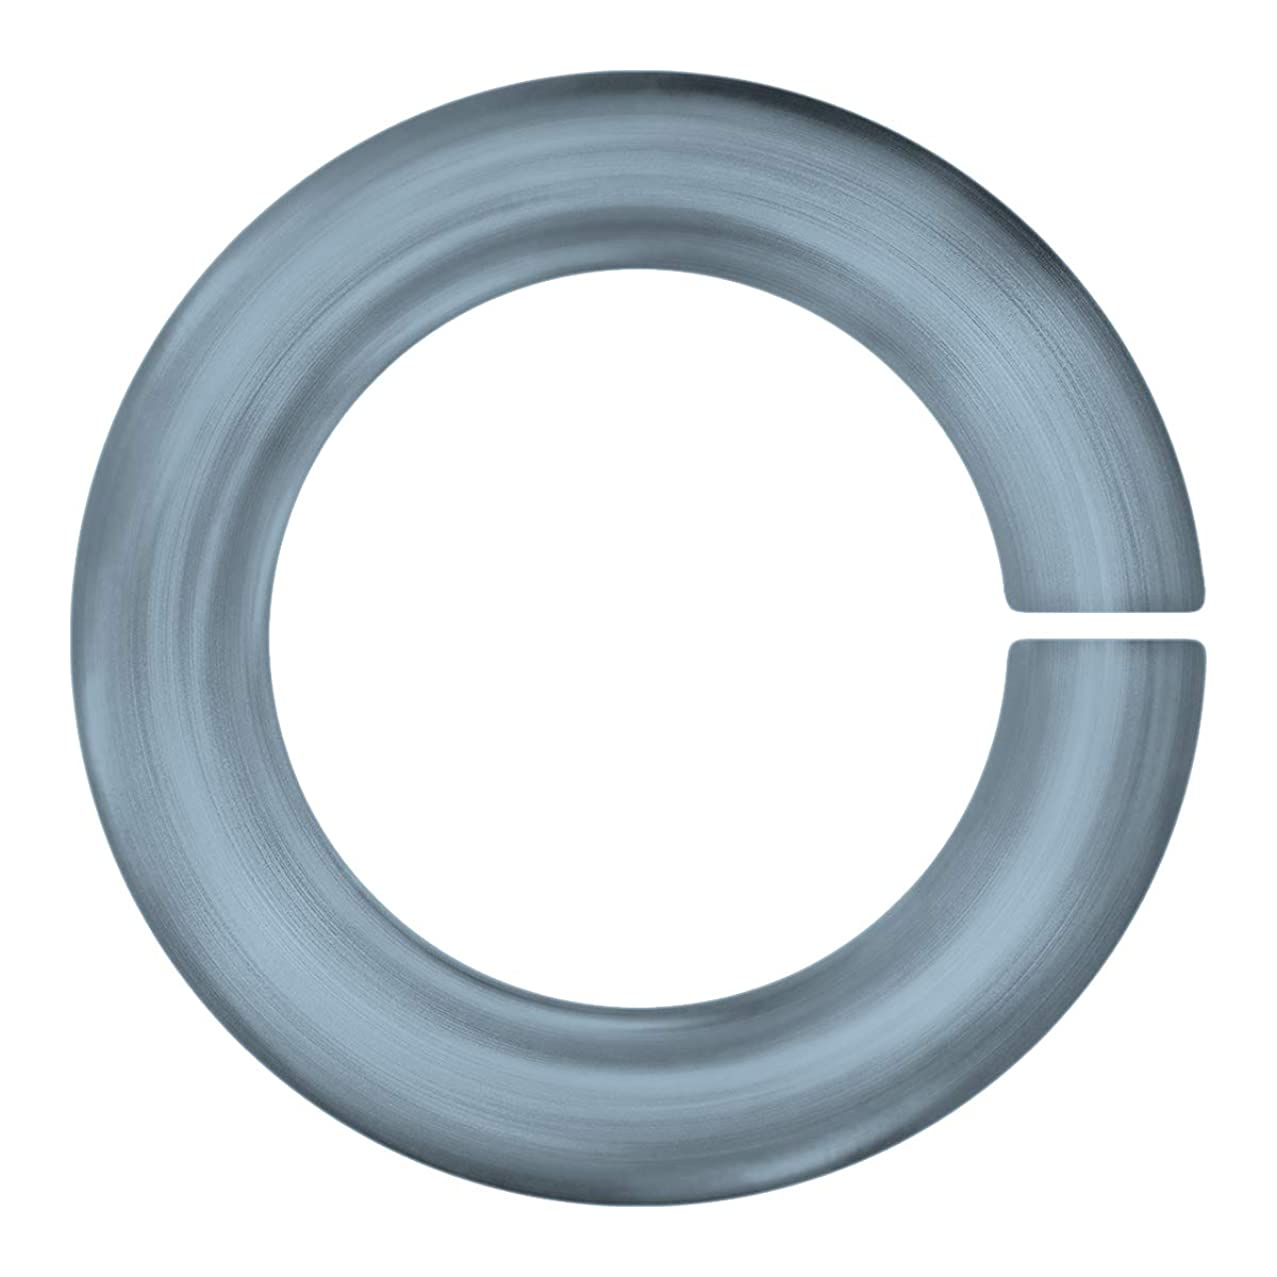 Weave Got Maille 18-Gauge 7mm Gunmetal Anodized Aluminum Jump Rings - 1 Ounce, rezgylyoah656